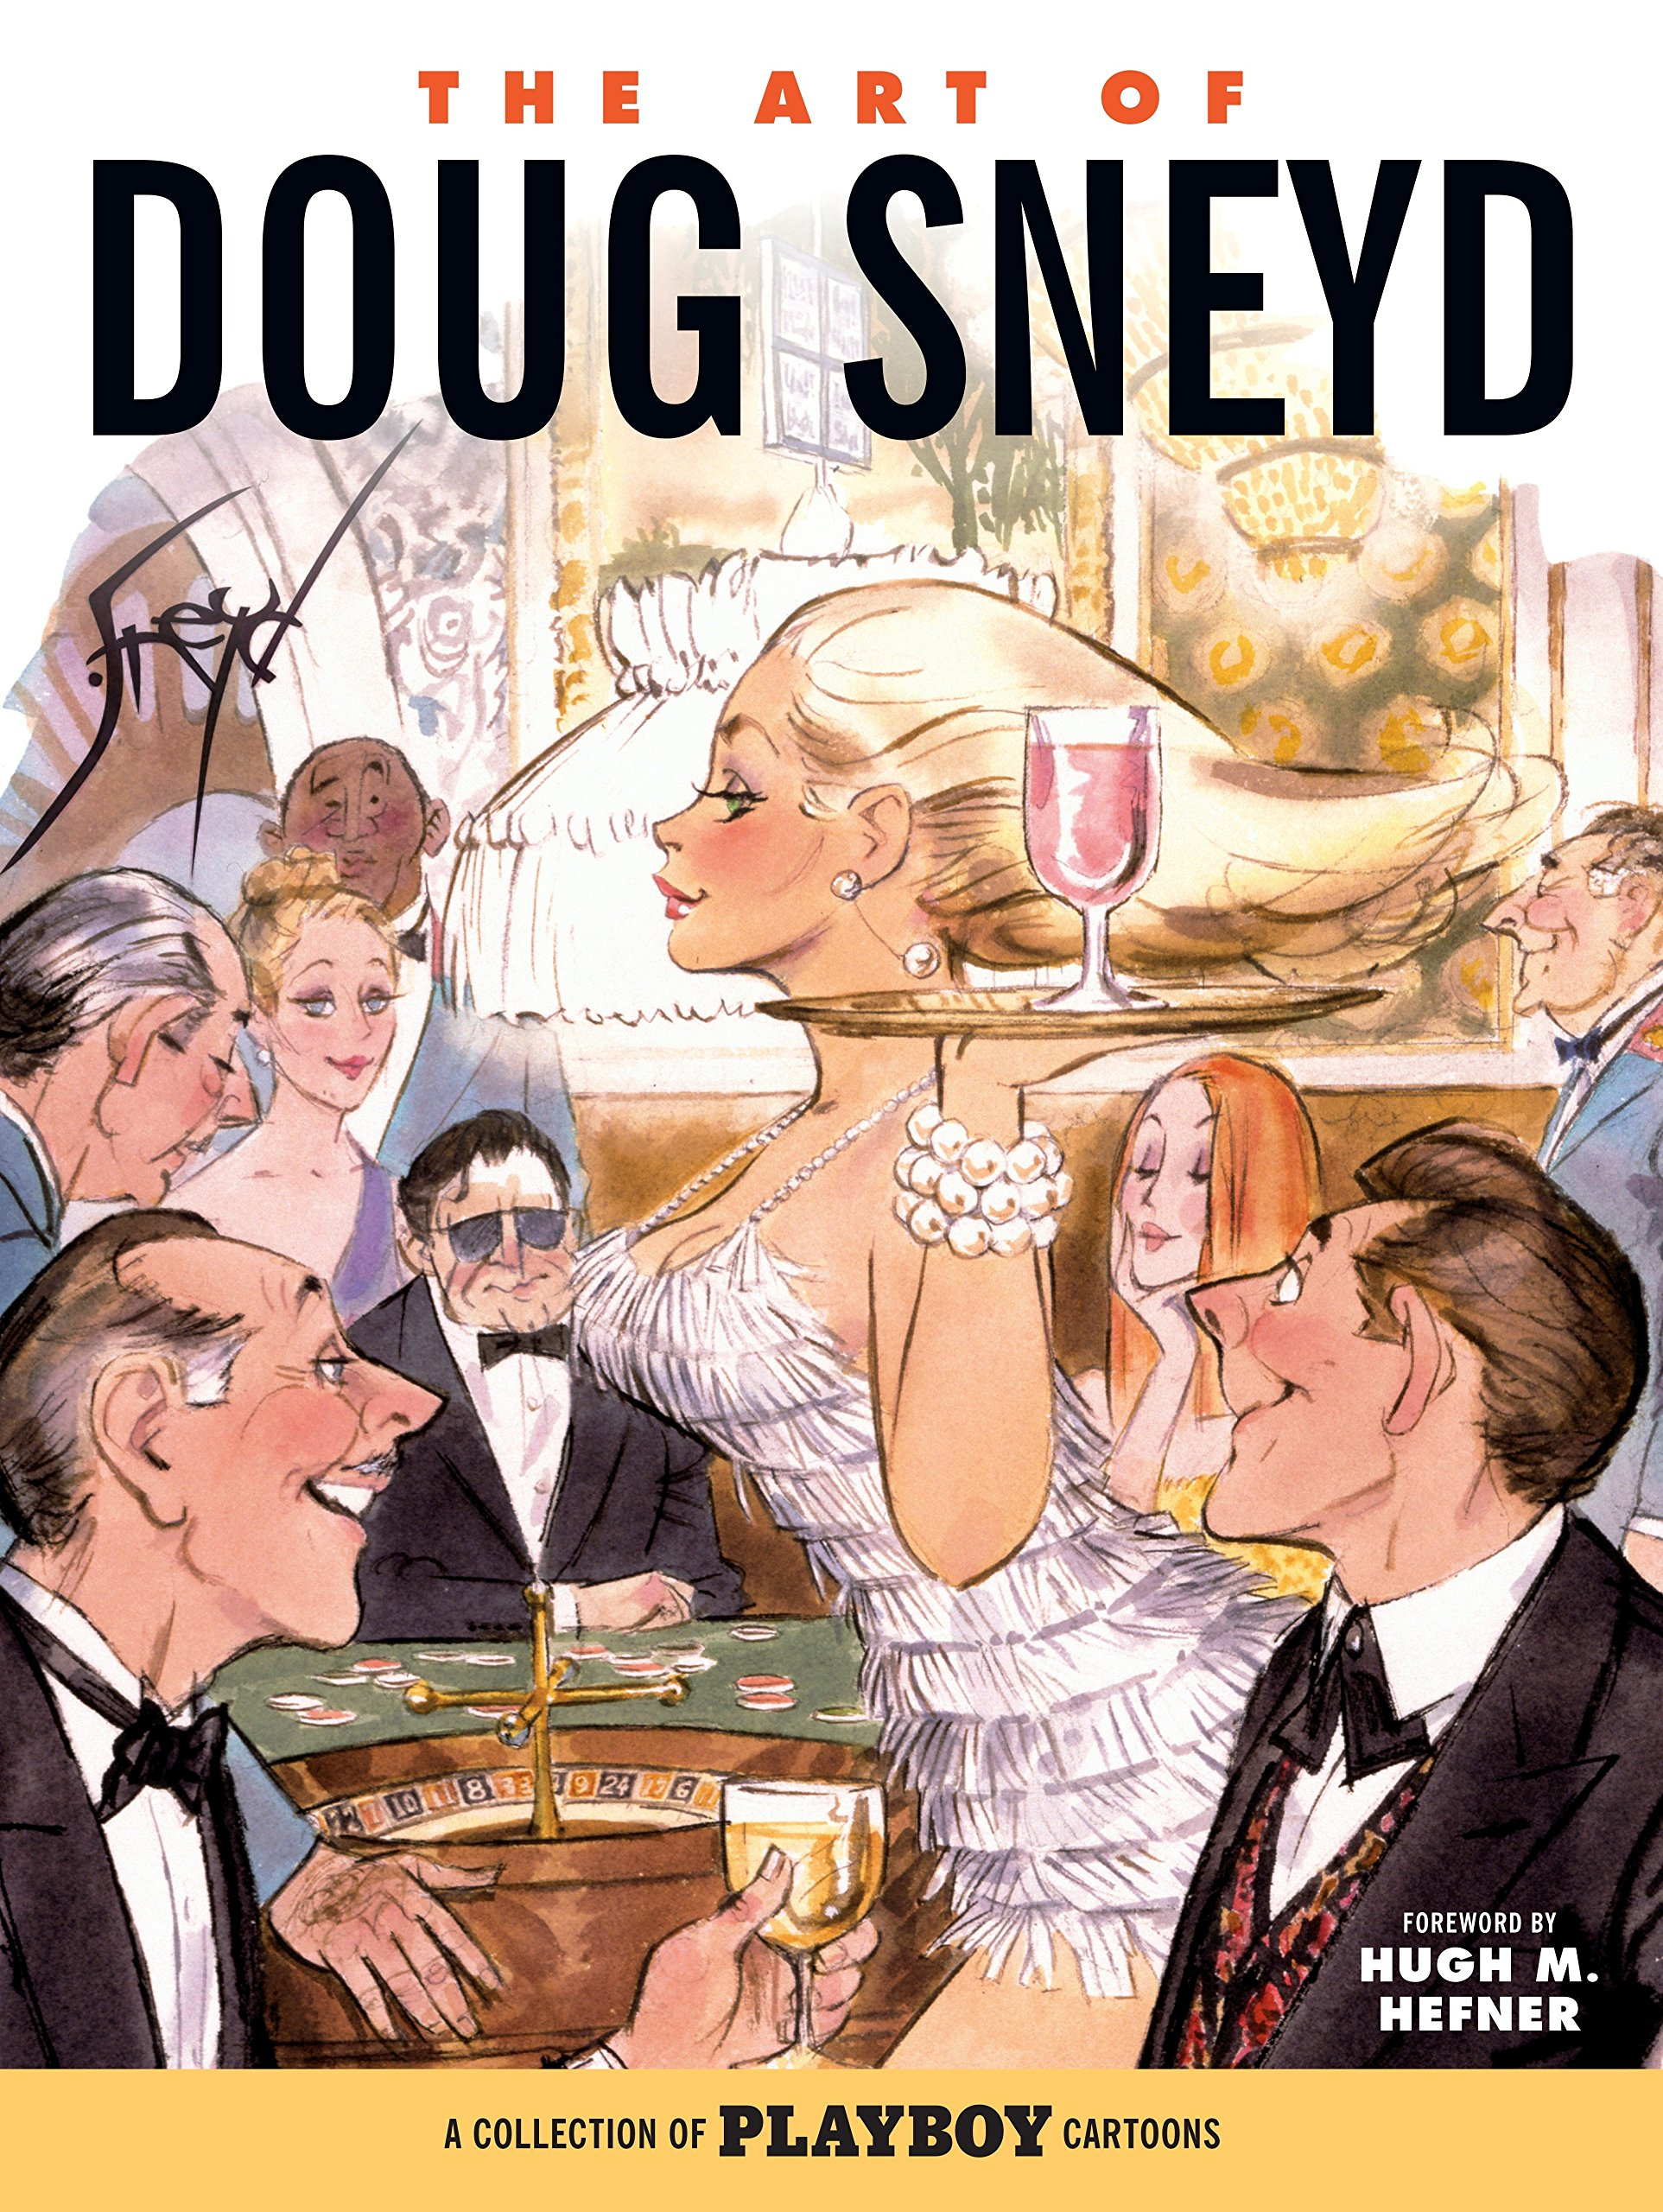 The Art of Doug Sneyd: A Collection of Playboy Cartoons by Dark Horse Books